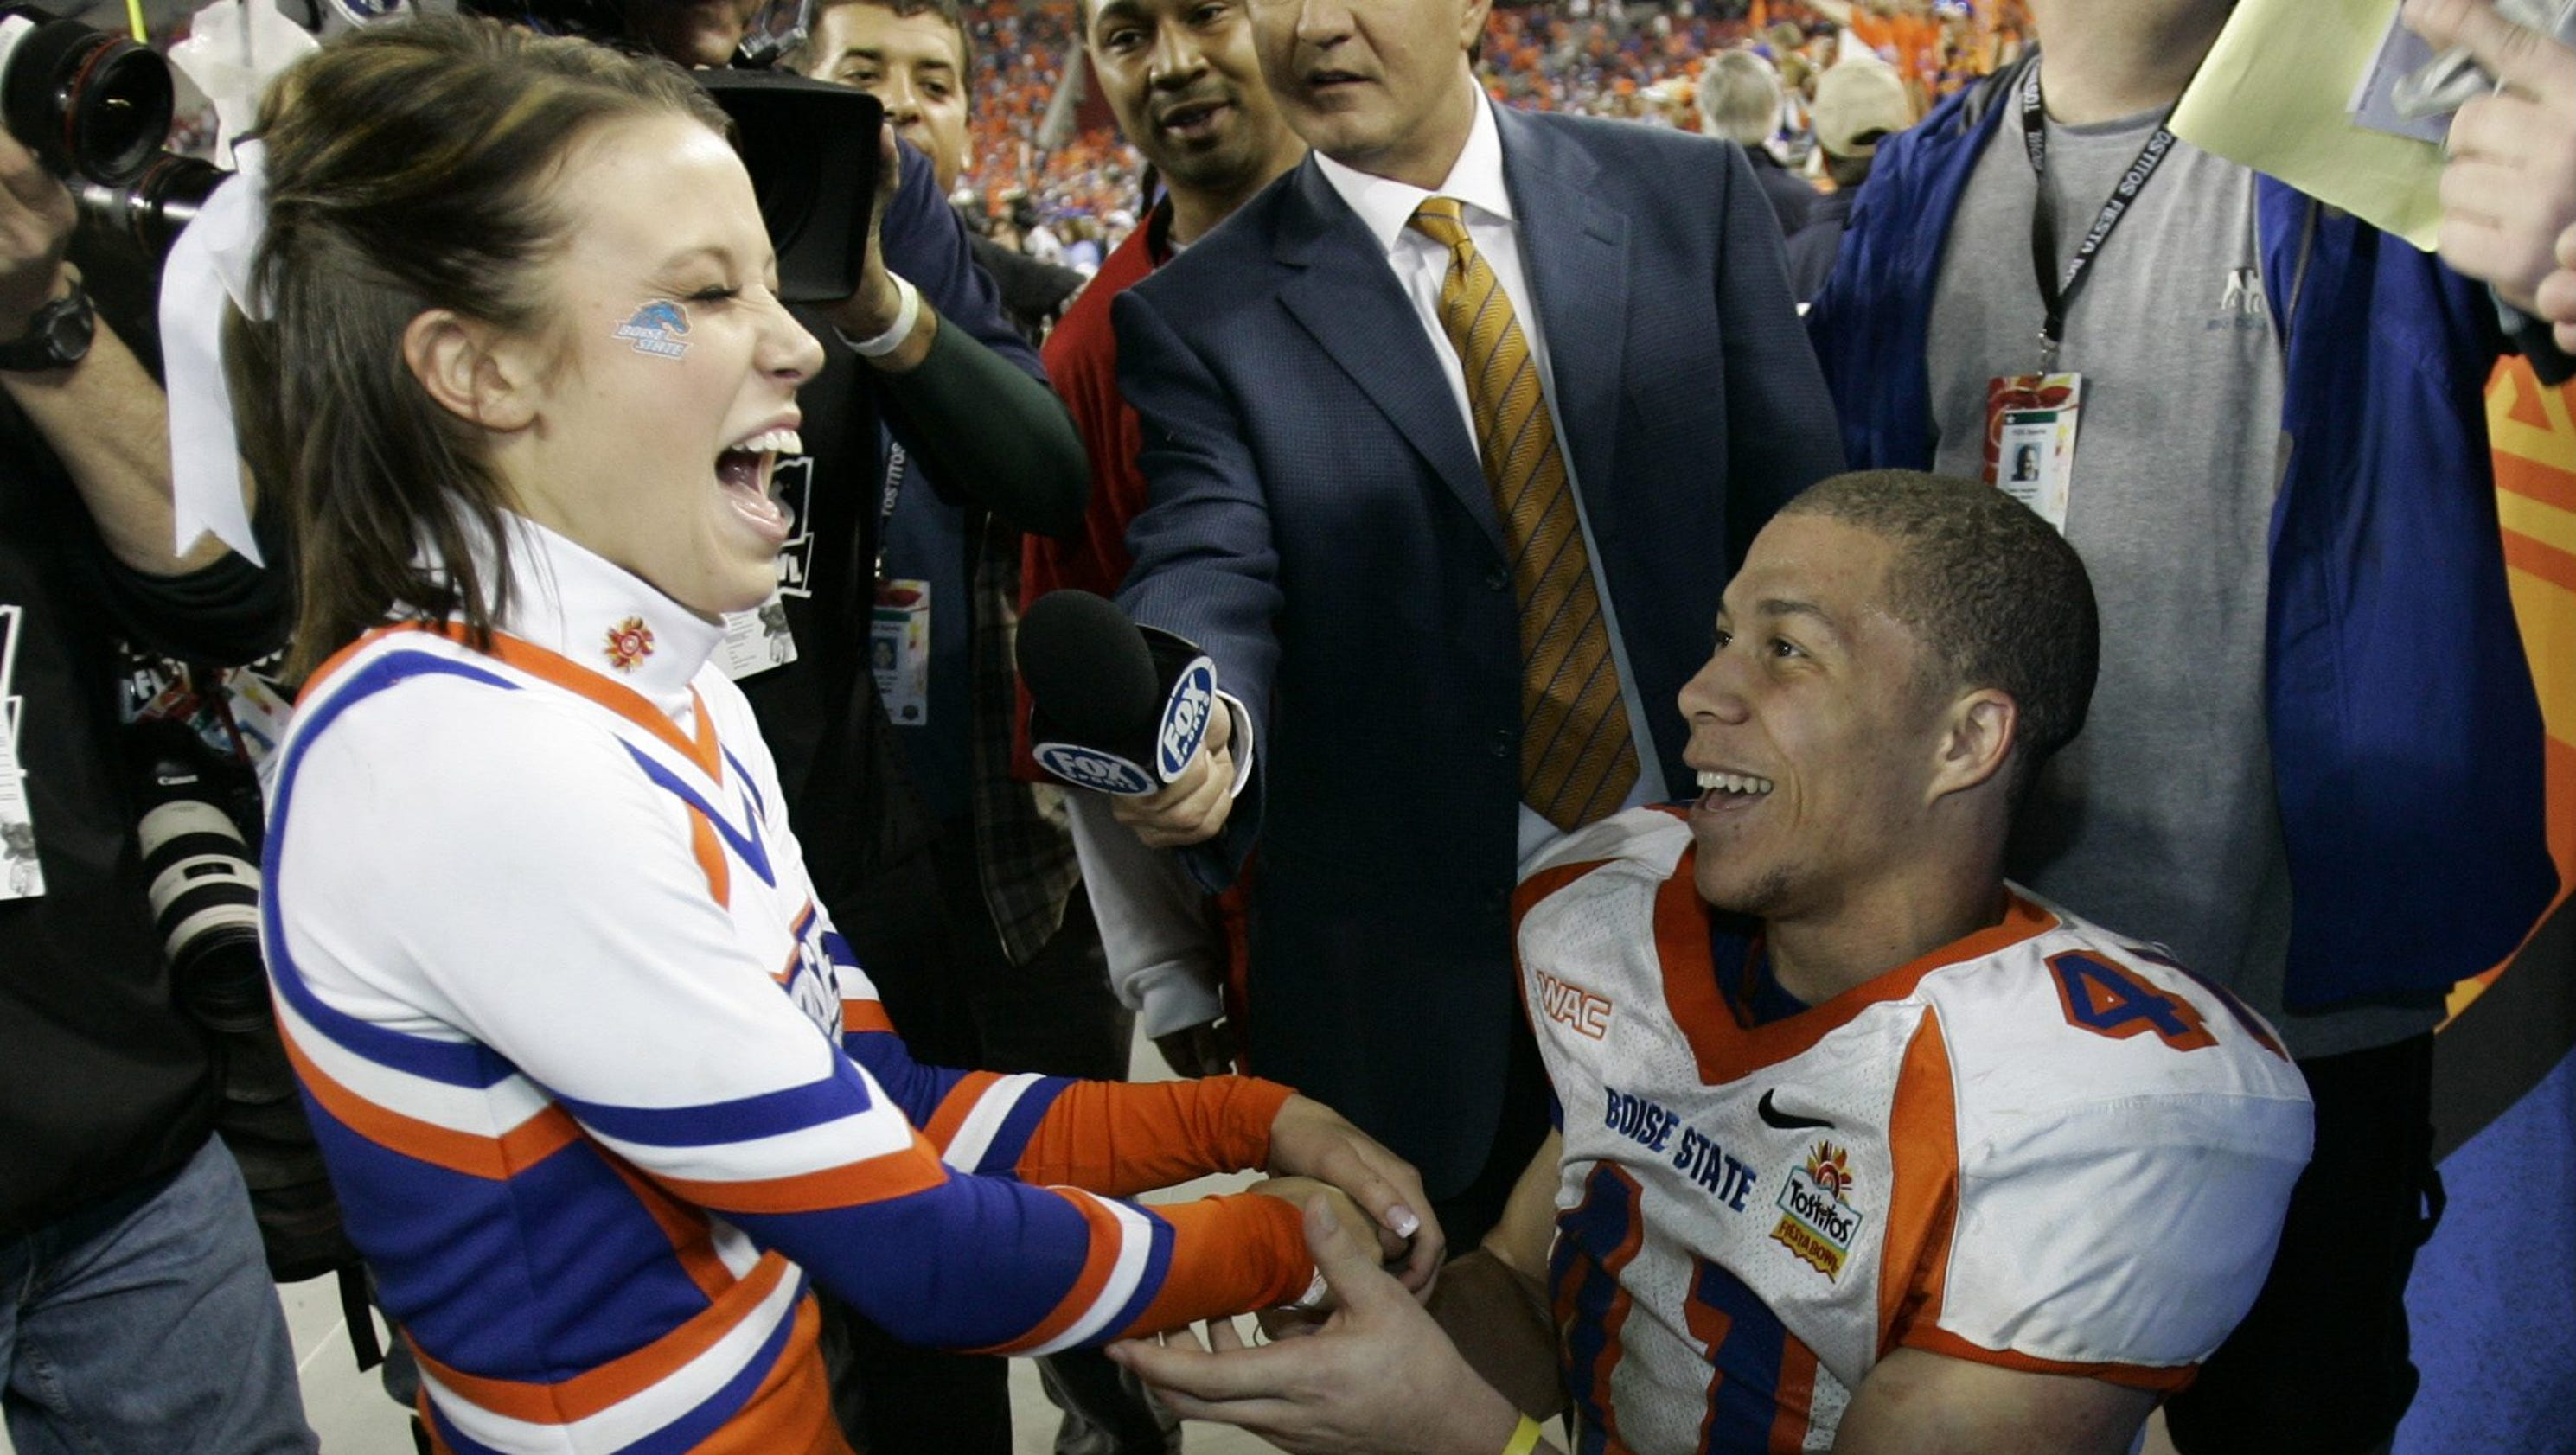 Correa S Proposal Almost As Good As Boise Player S